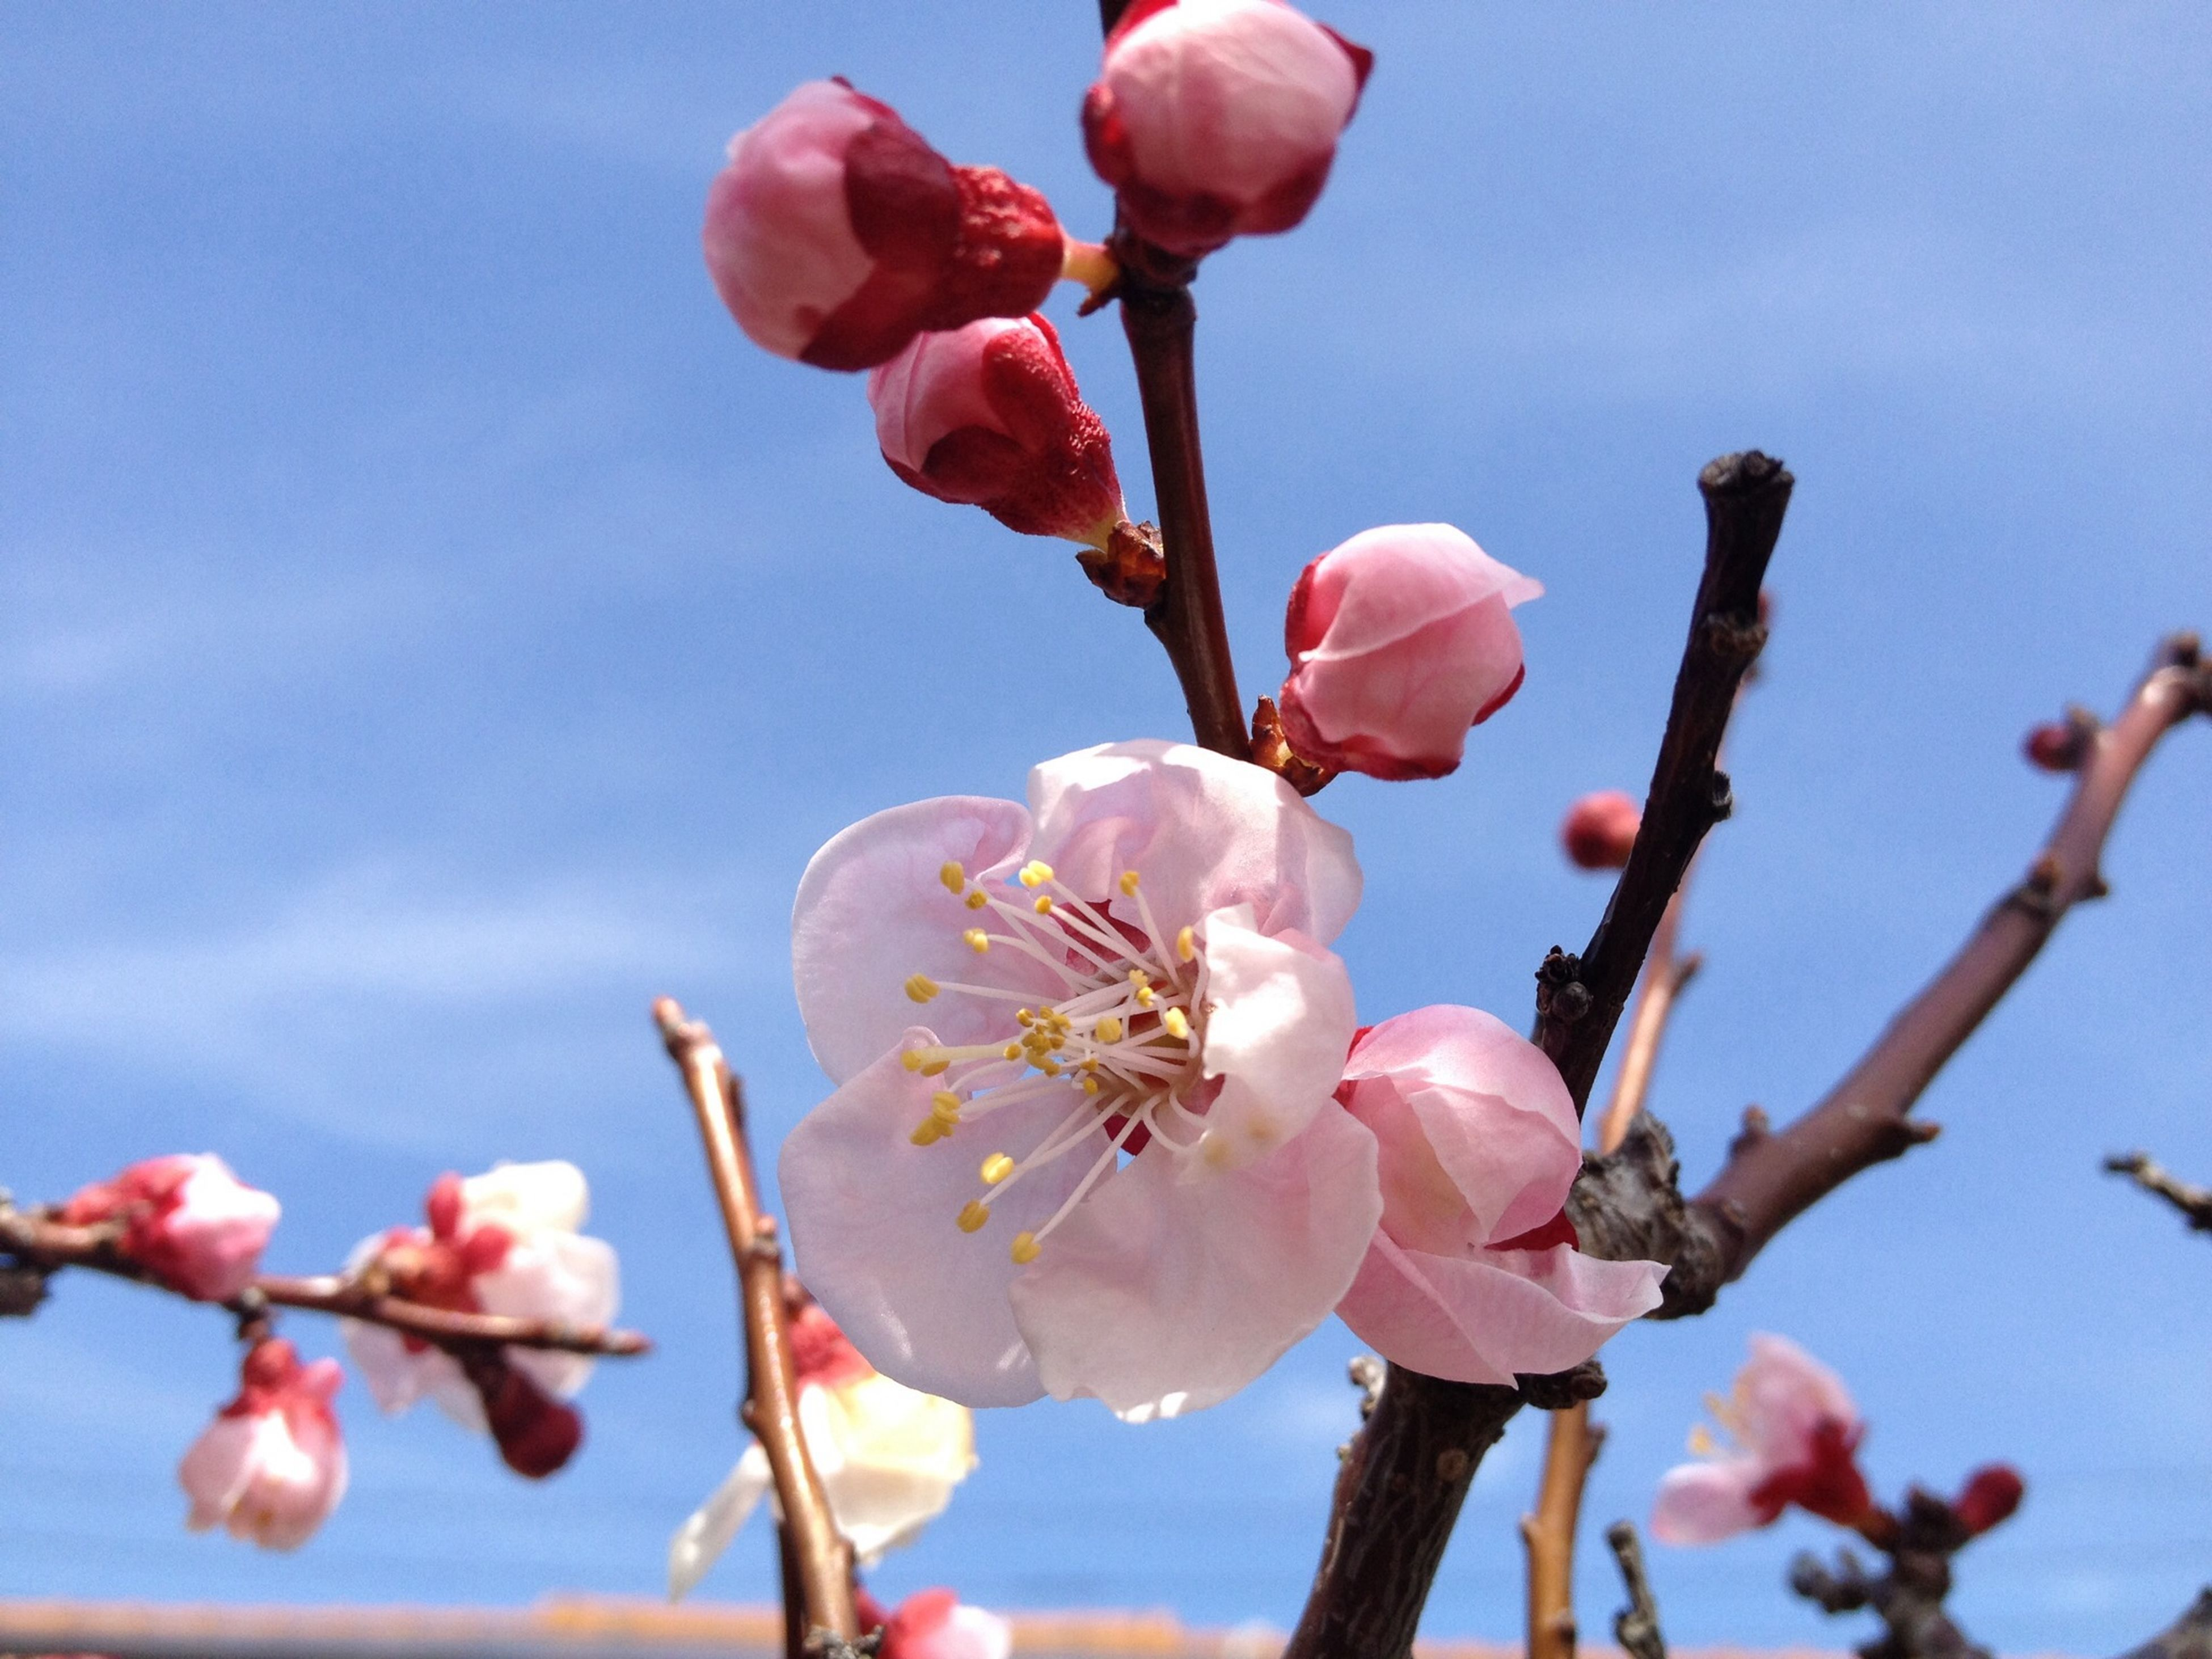 Apricot blossoms. Spring has come ! Hello World Taking Photos Spring Enjoying Life